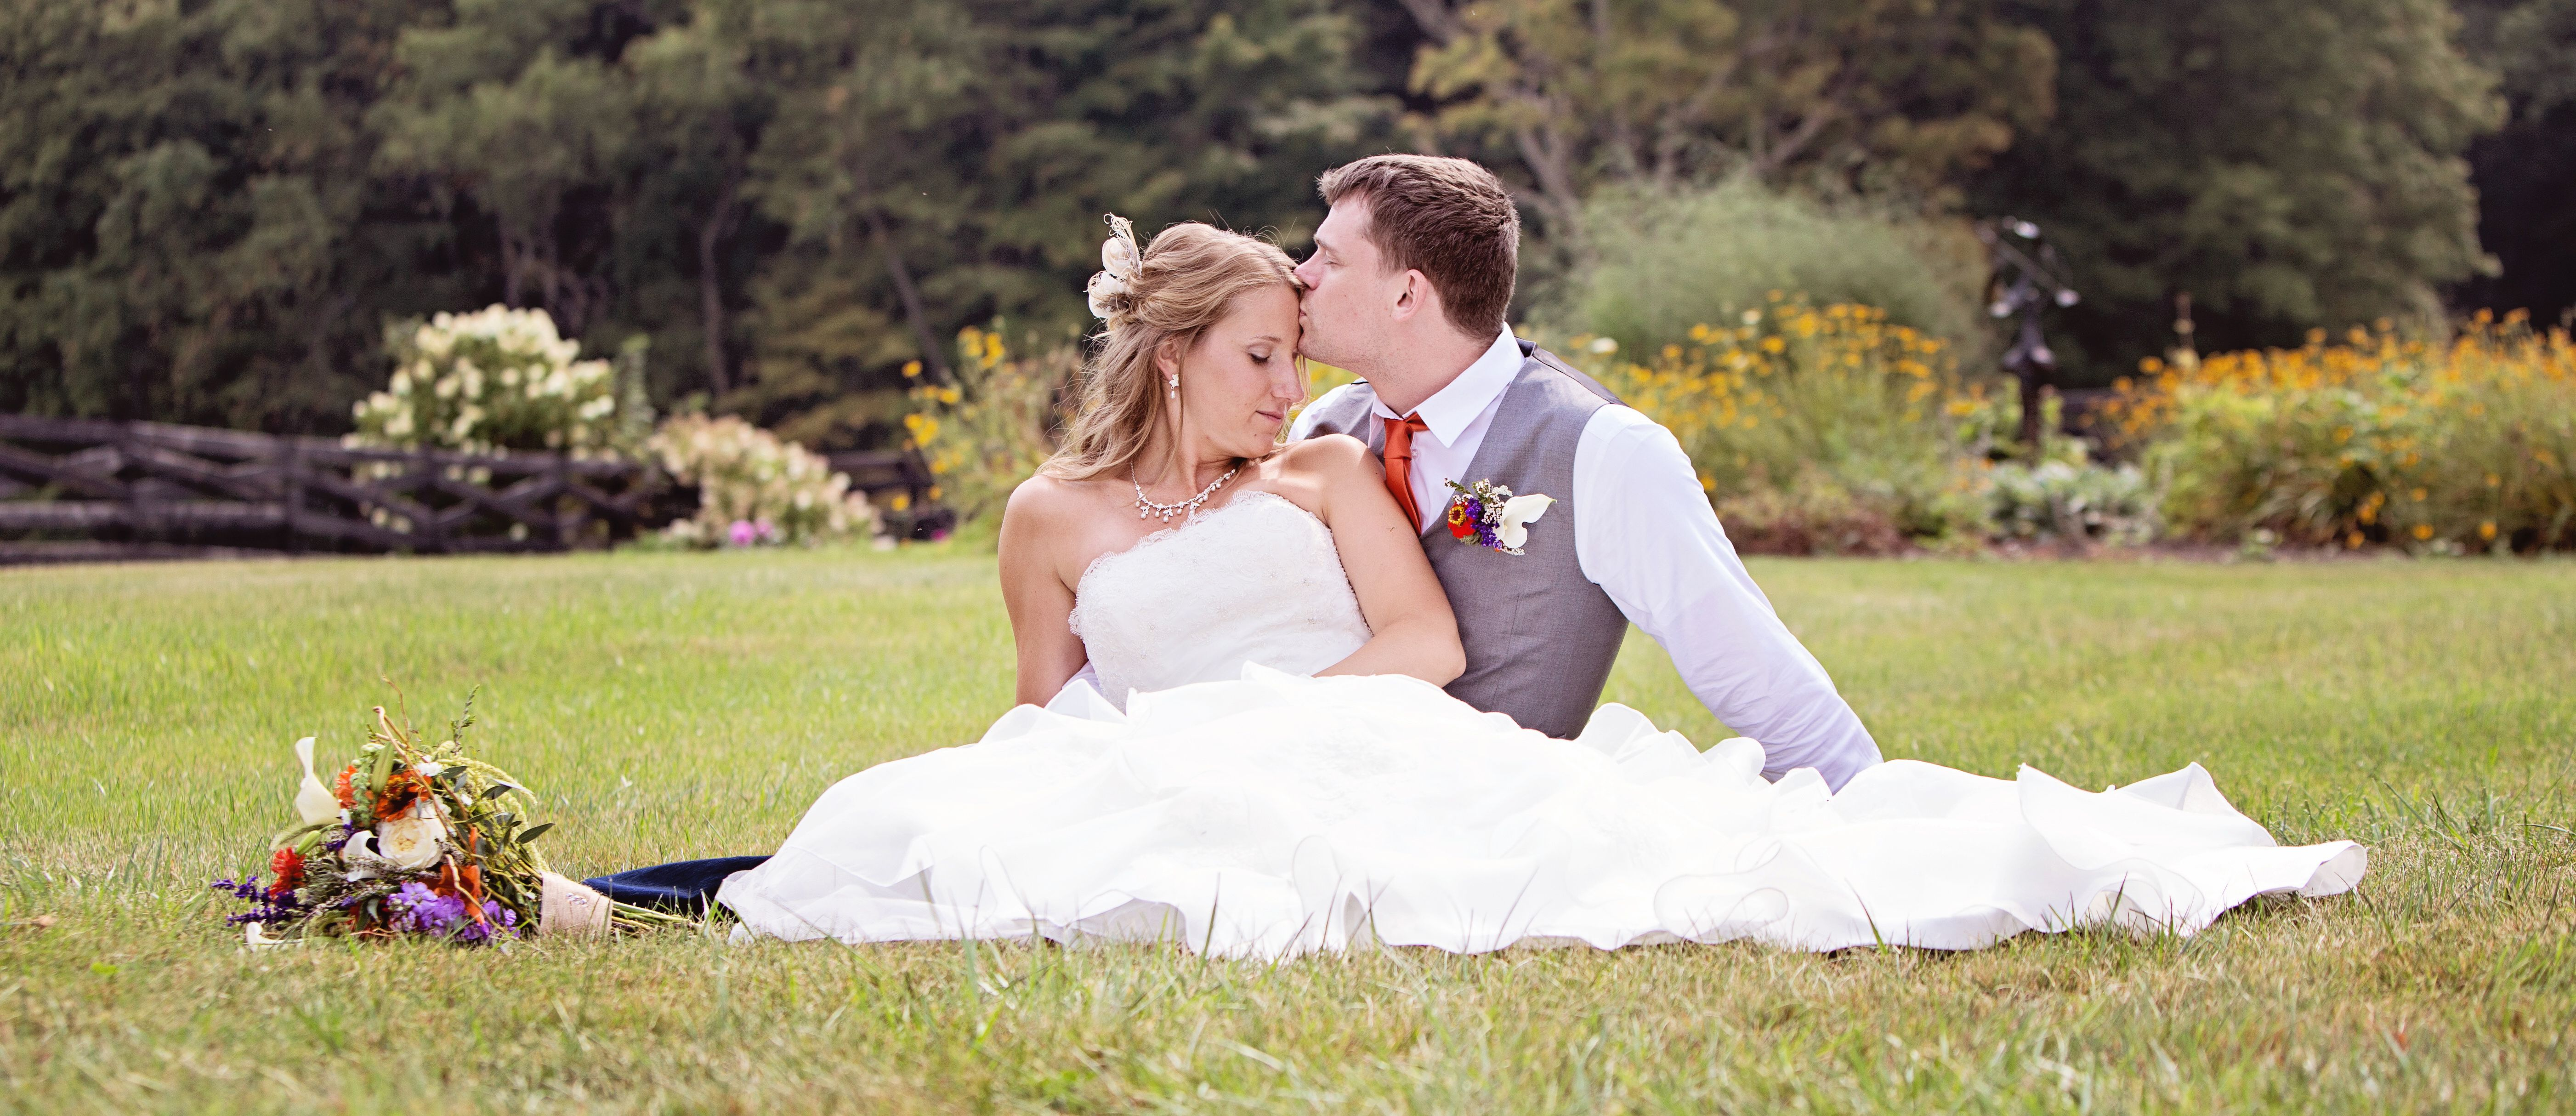 A Country Style Wedding Fred Vero Photography Butler Pa Photographer Pittsburgh